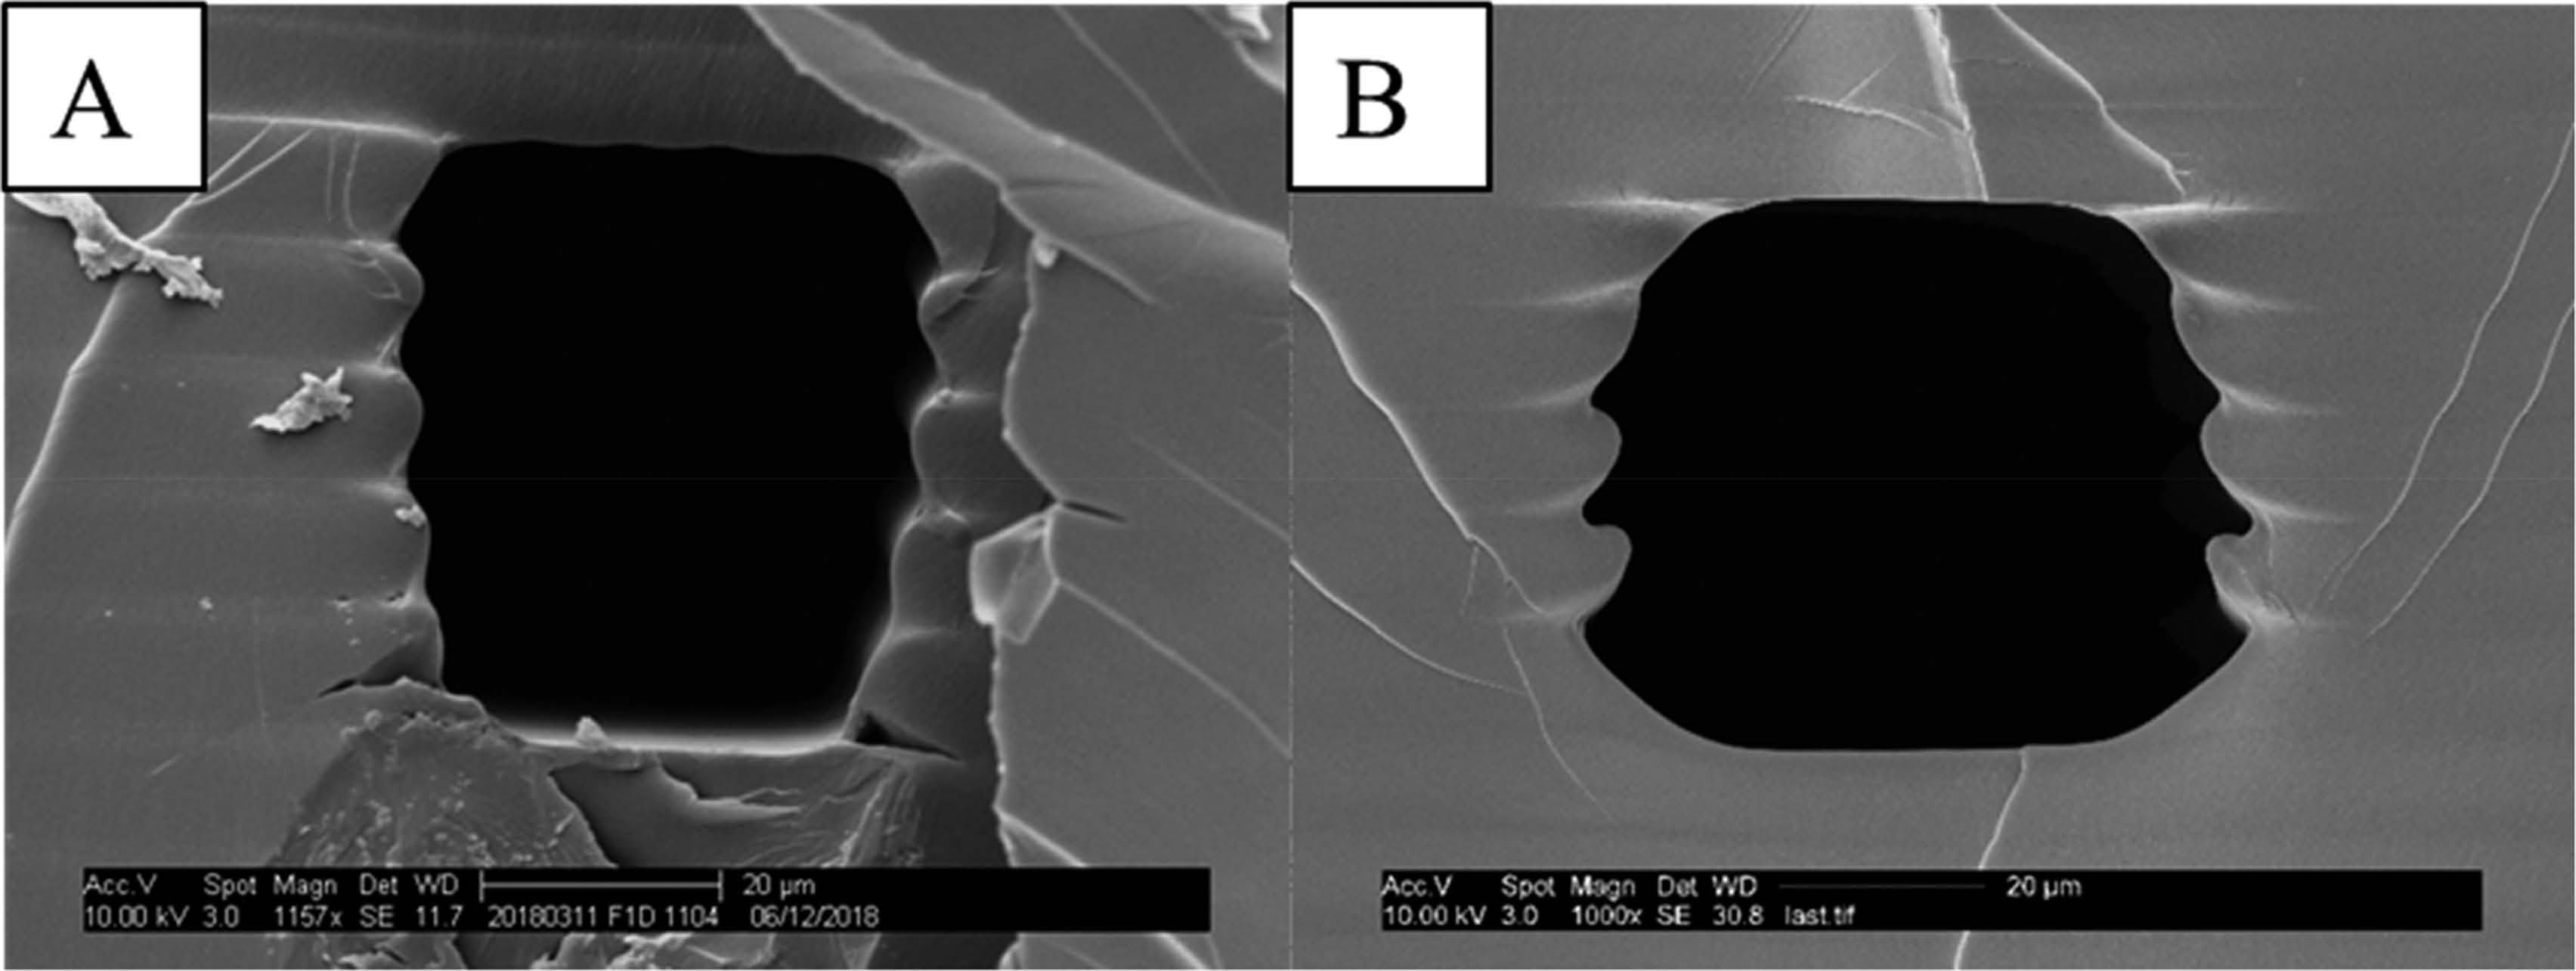 The photo shows two electron microscope images of channels, one very symmetrical and clean, the other rougher and not symmetrical